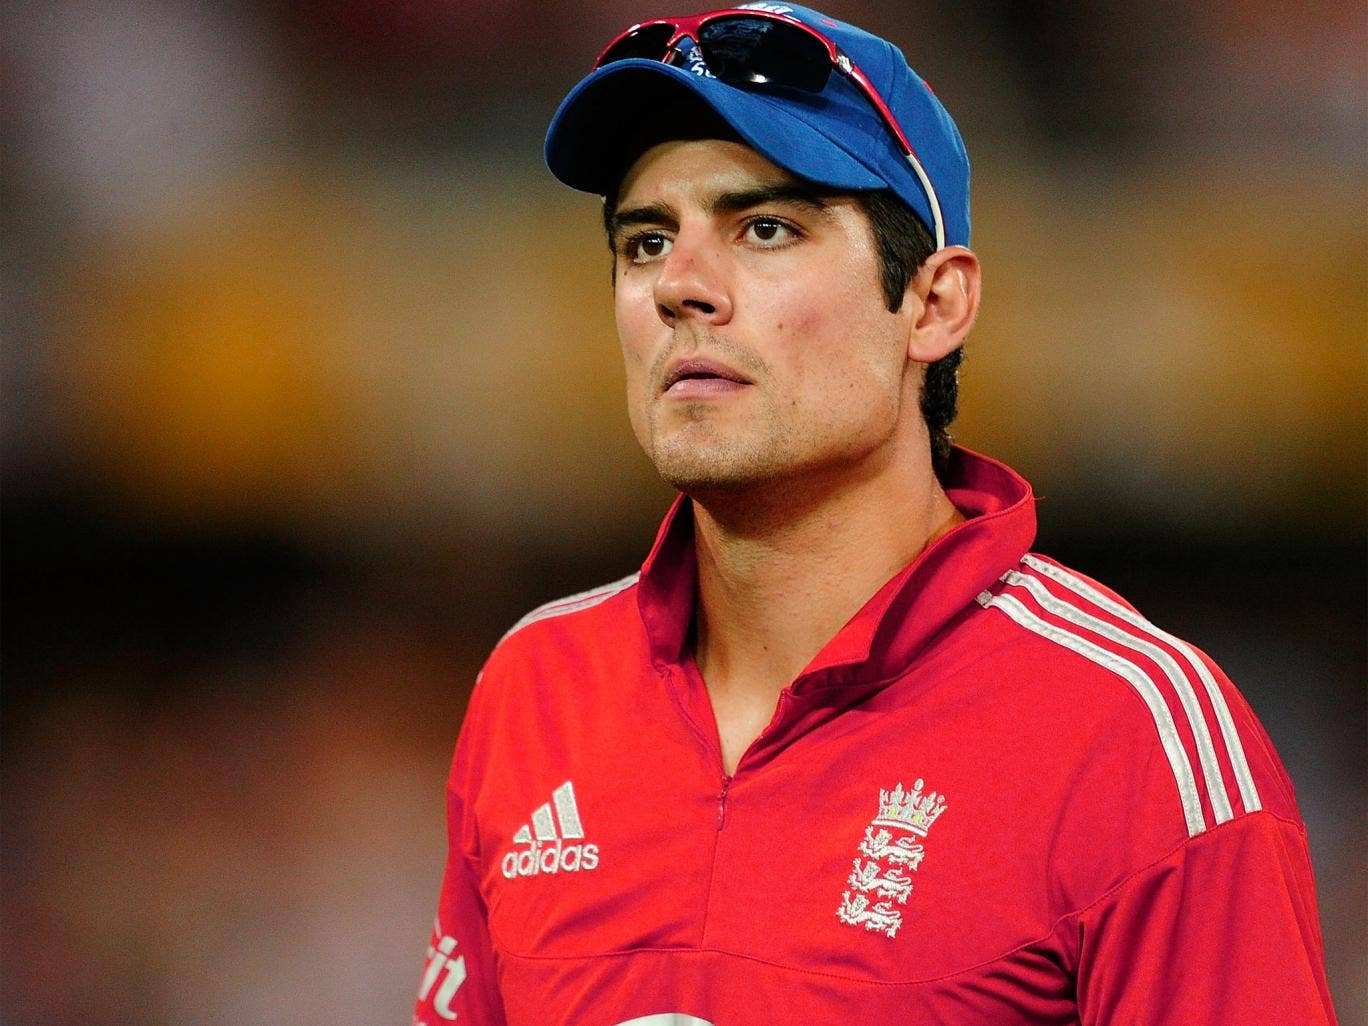 Alastair Cook will not play in the fourth ODI